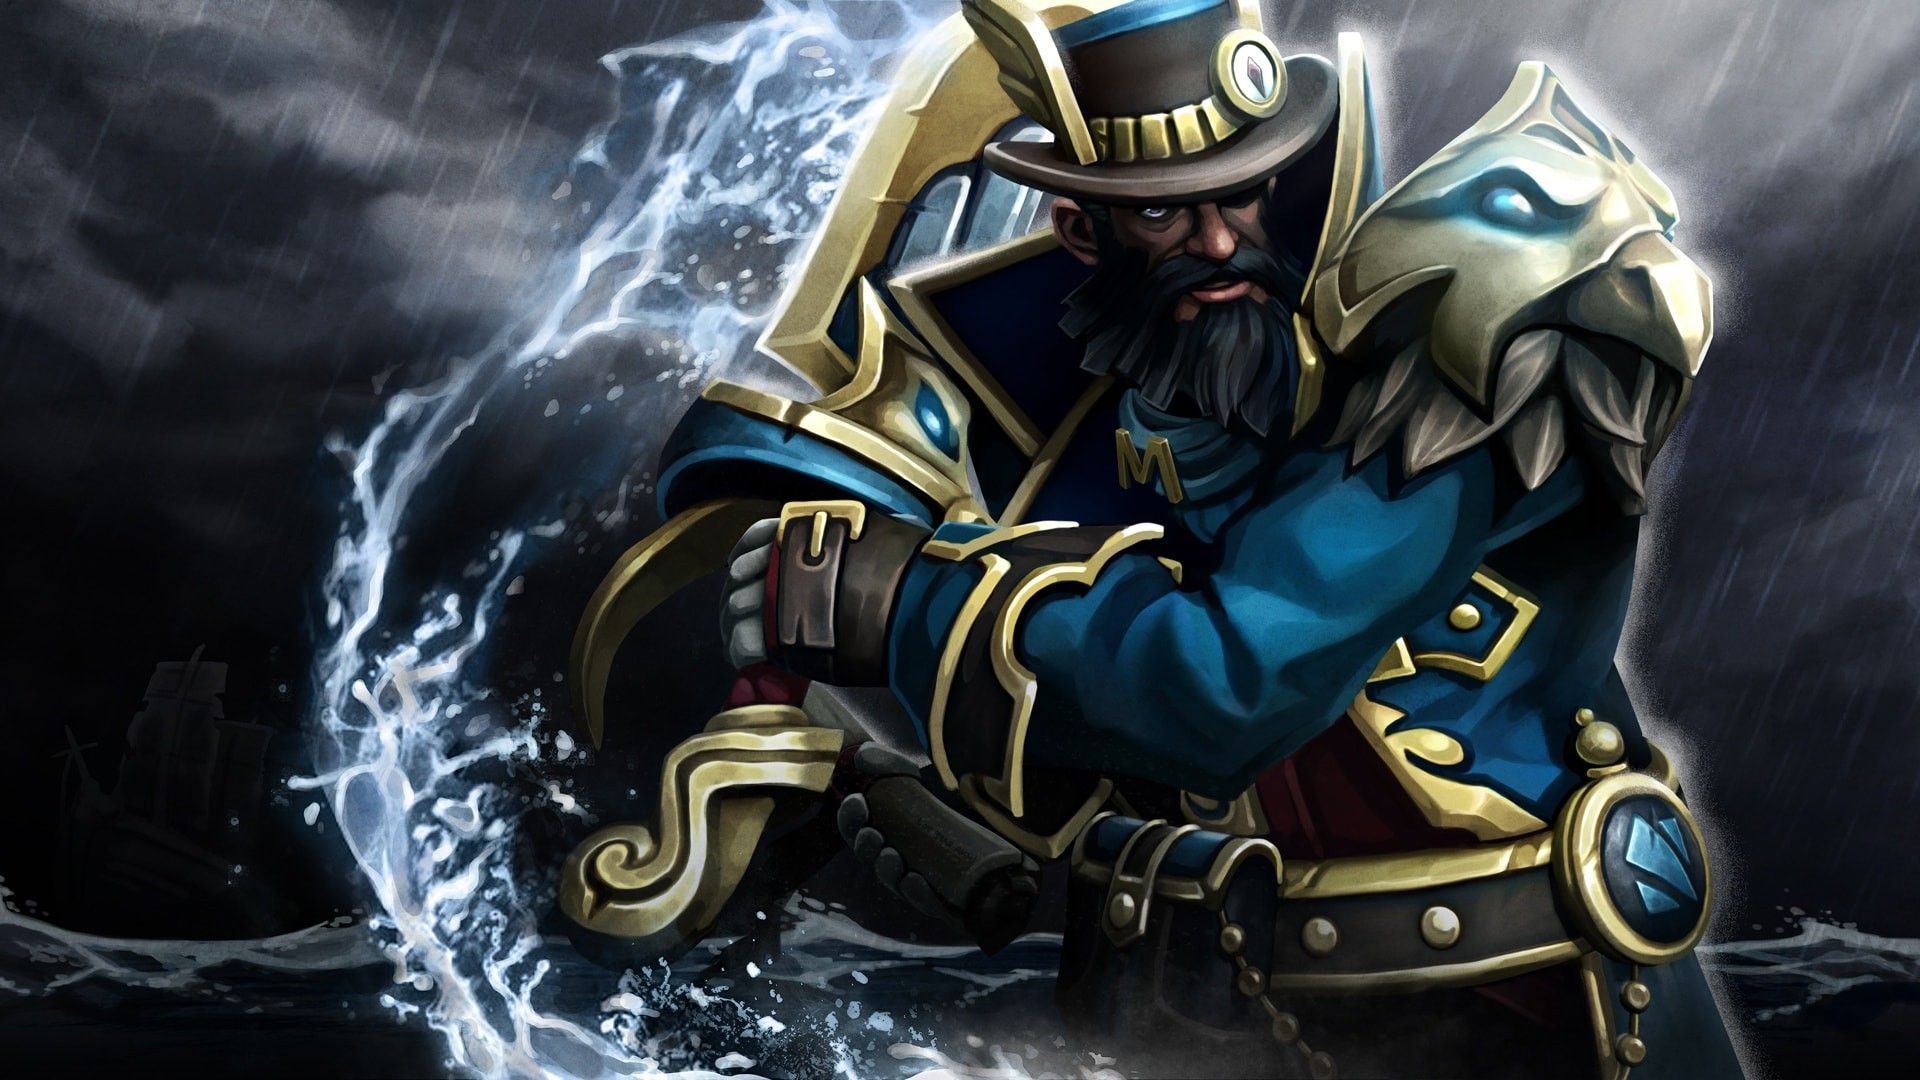 kunkka wallpapers free